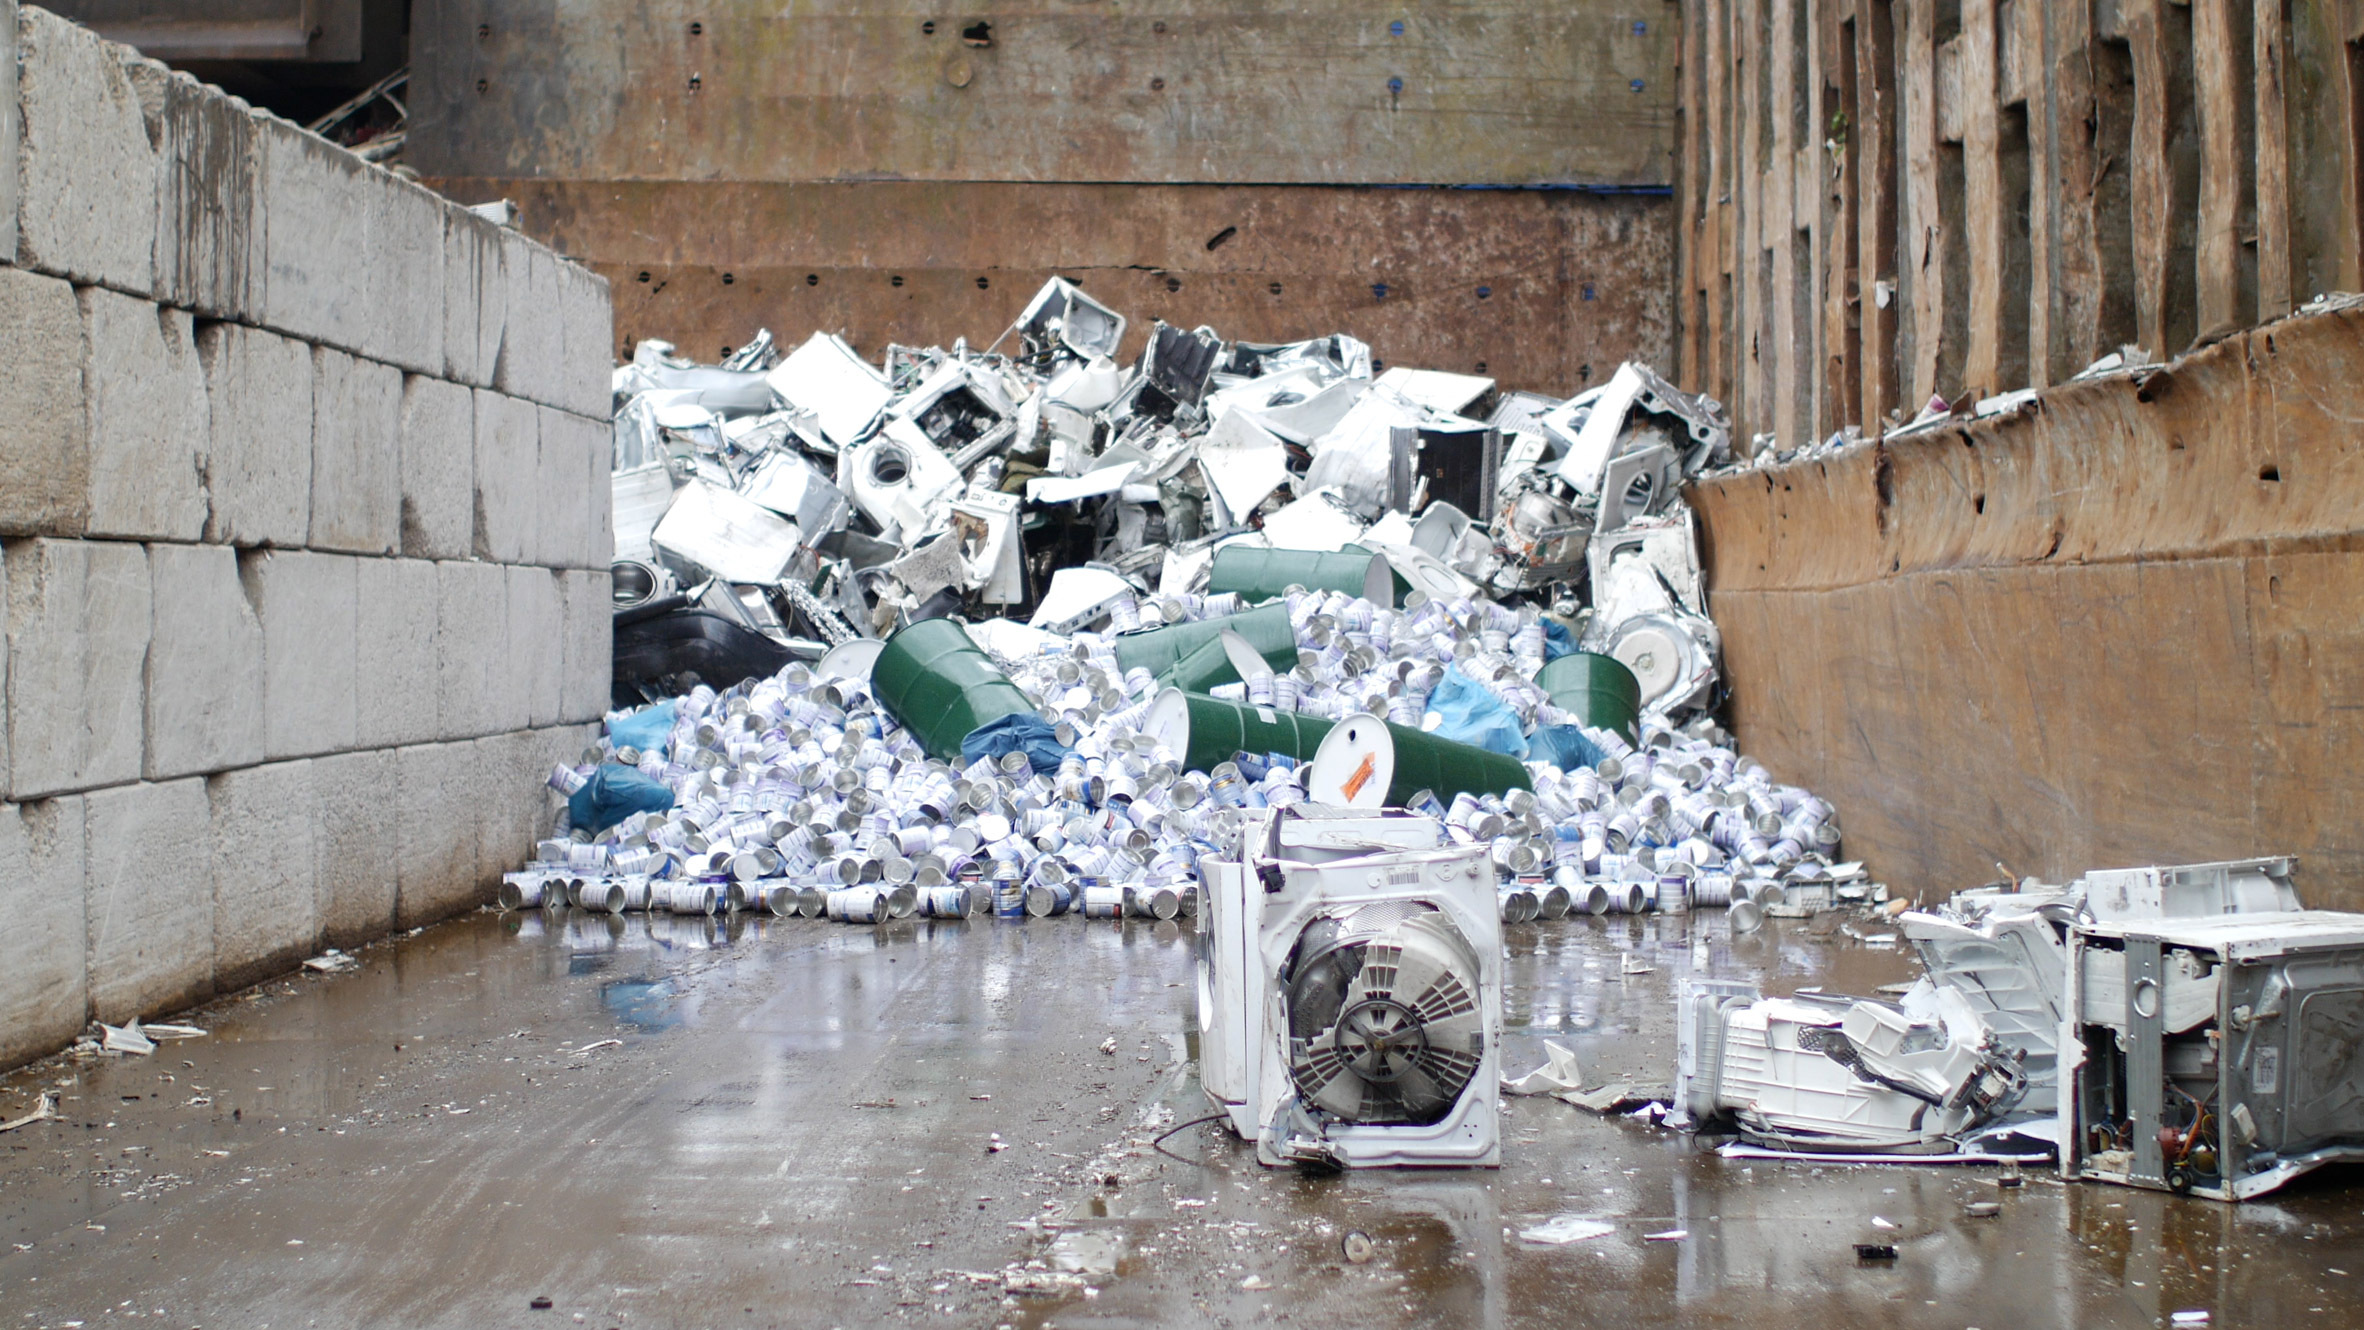 The Iphone Is Not Very Innovative Says Formafantasma Electronics Scrap Recycling Pictures Zimbio Duo Discovered That By 2080 Our Biggest Metal Reserves Will No Longer Be Underground